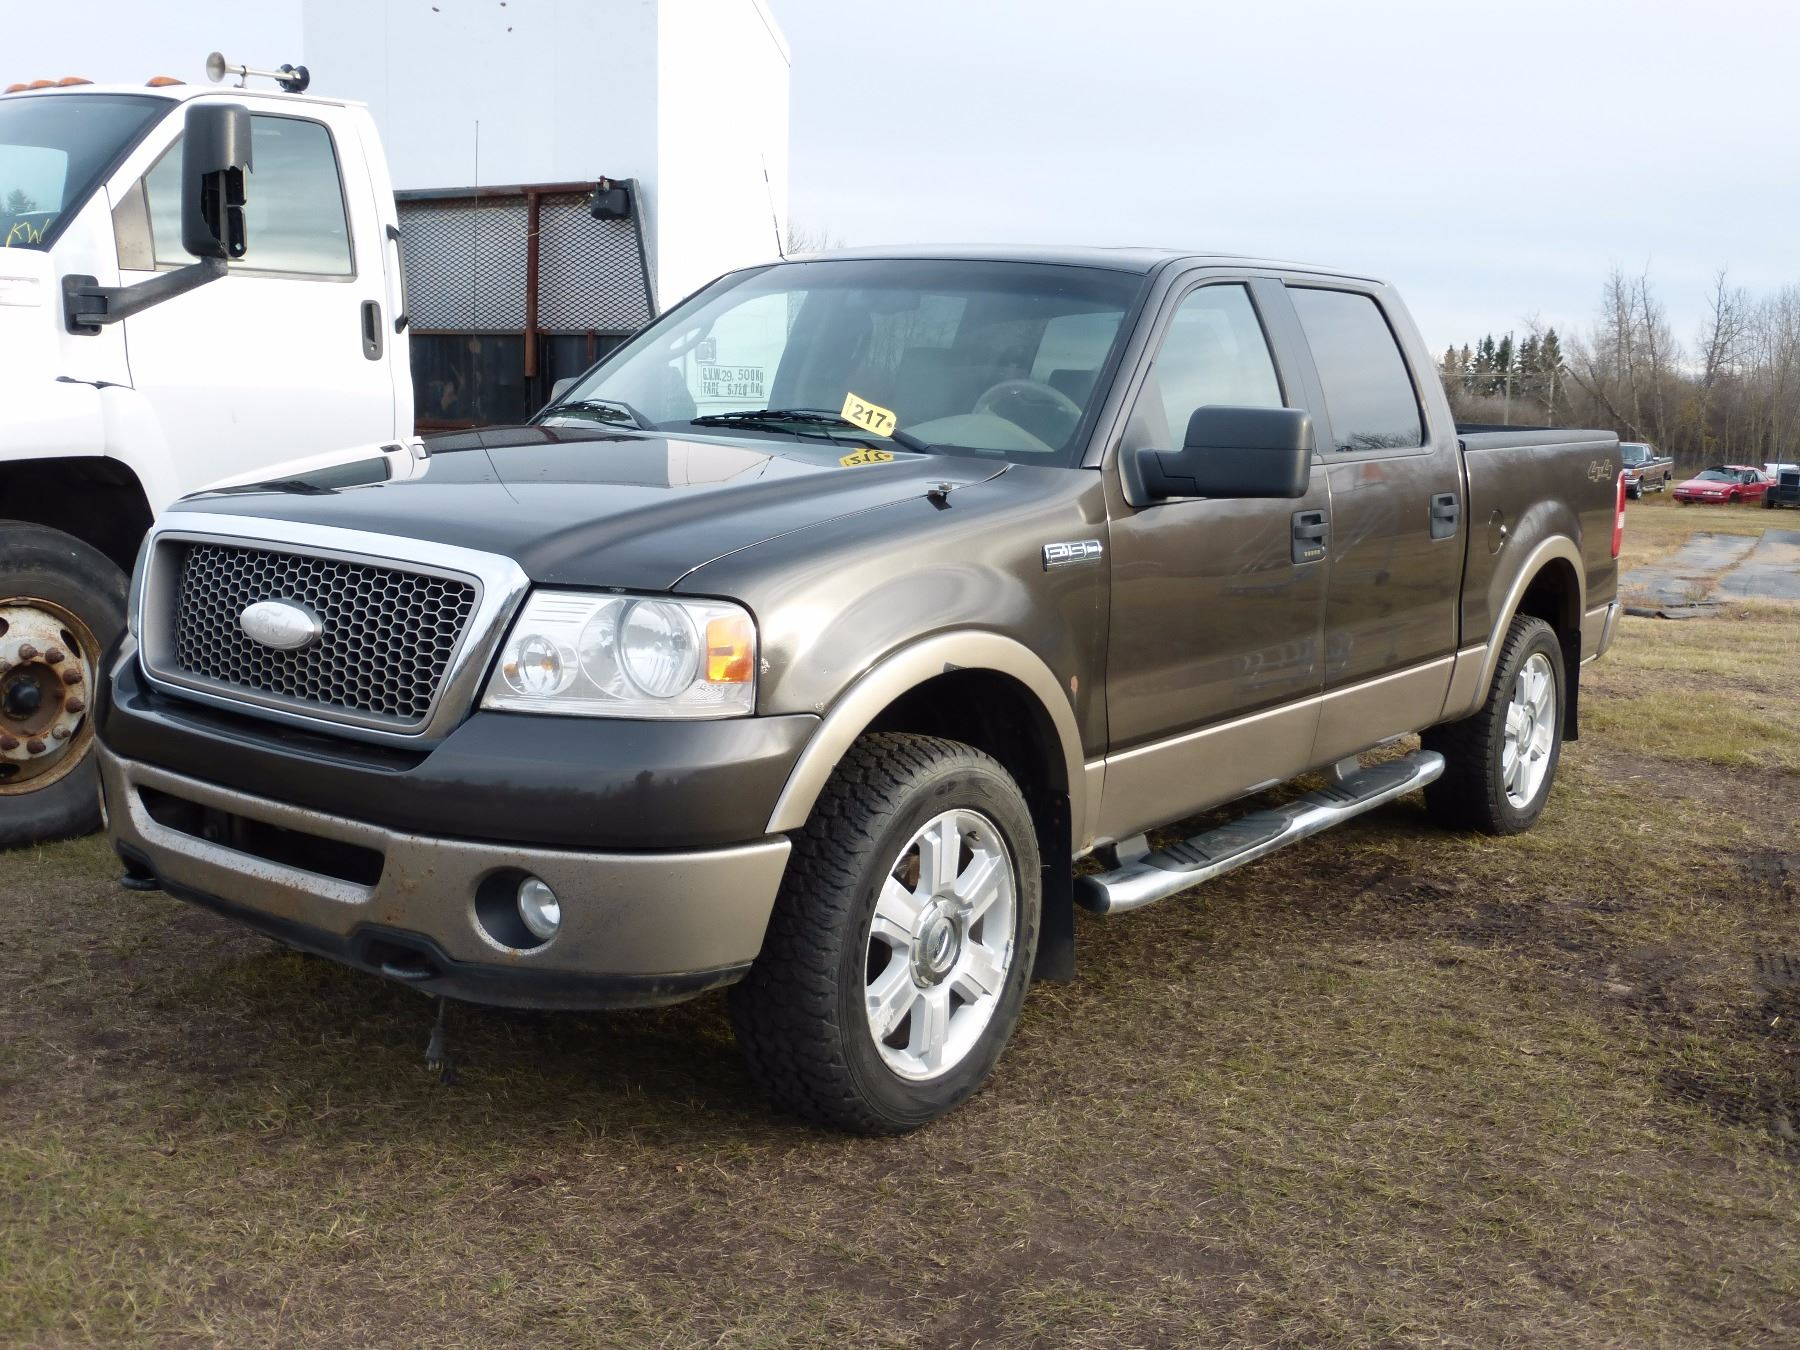 Image 1 2006 ford f150 lariat 4x4 truck